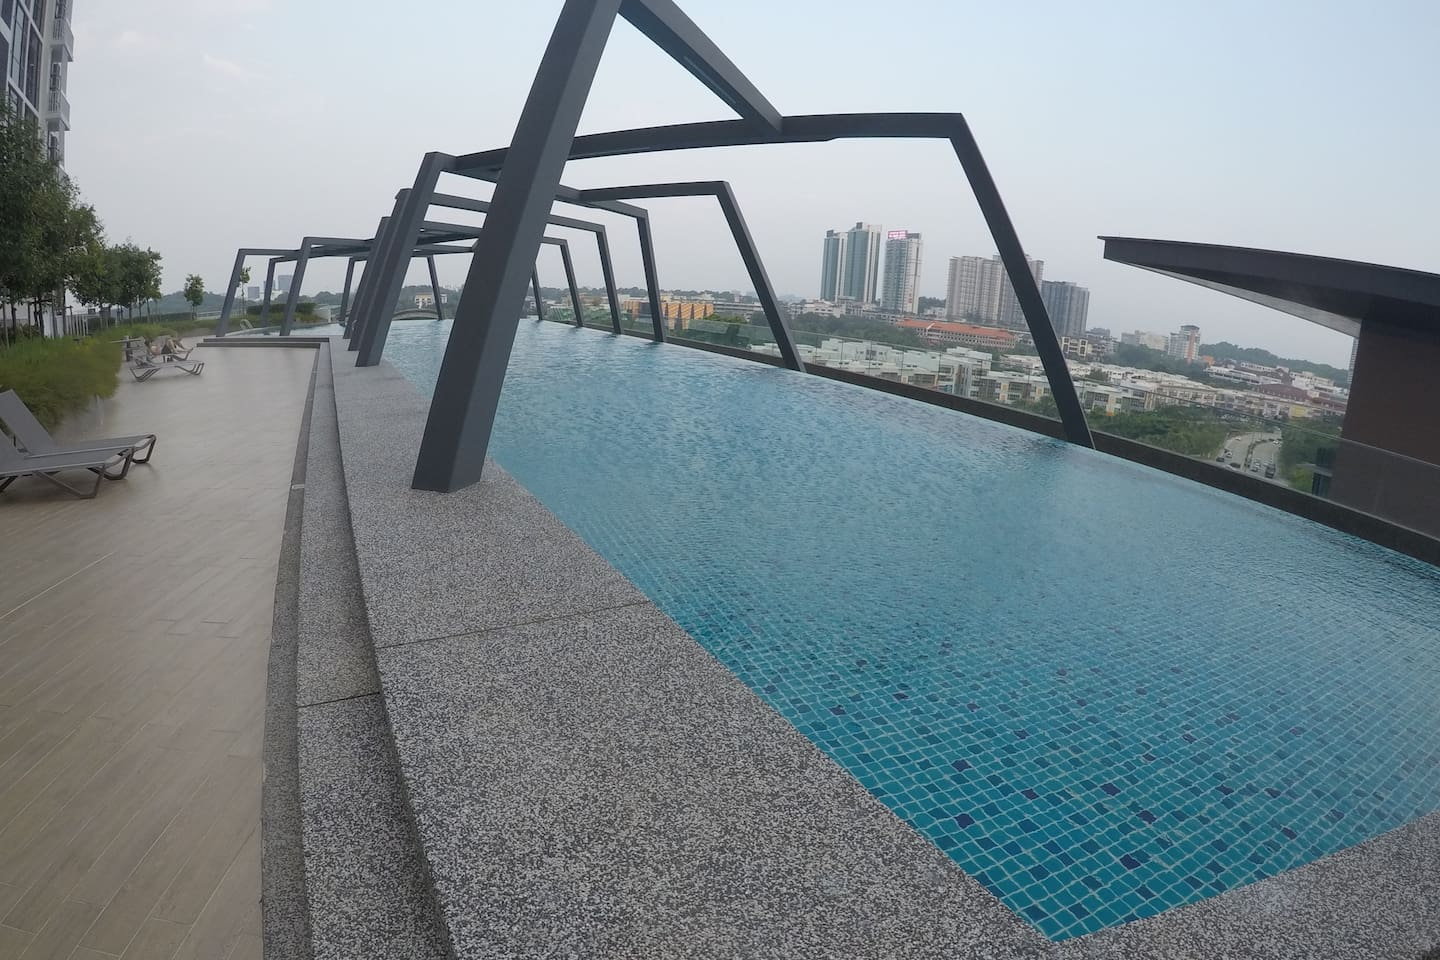 The pool at level 8